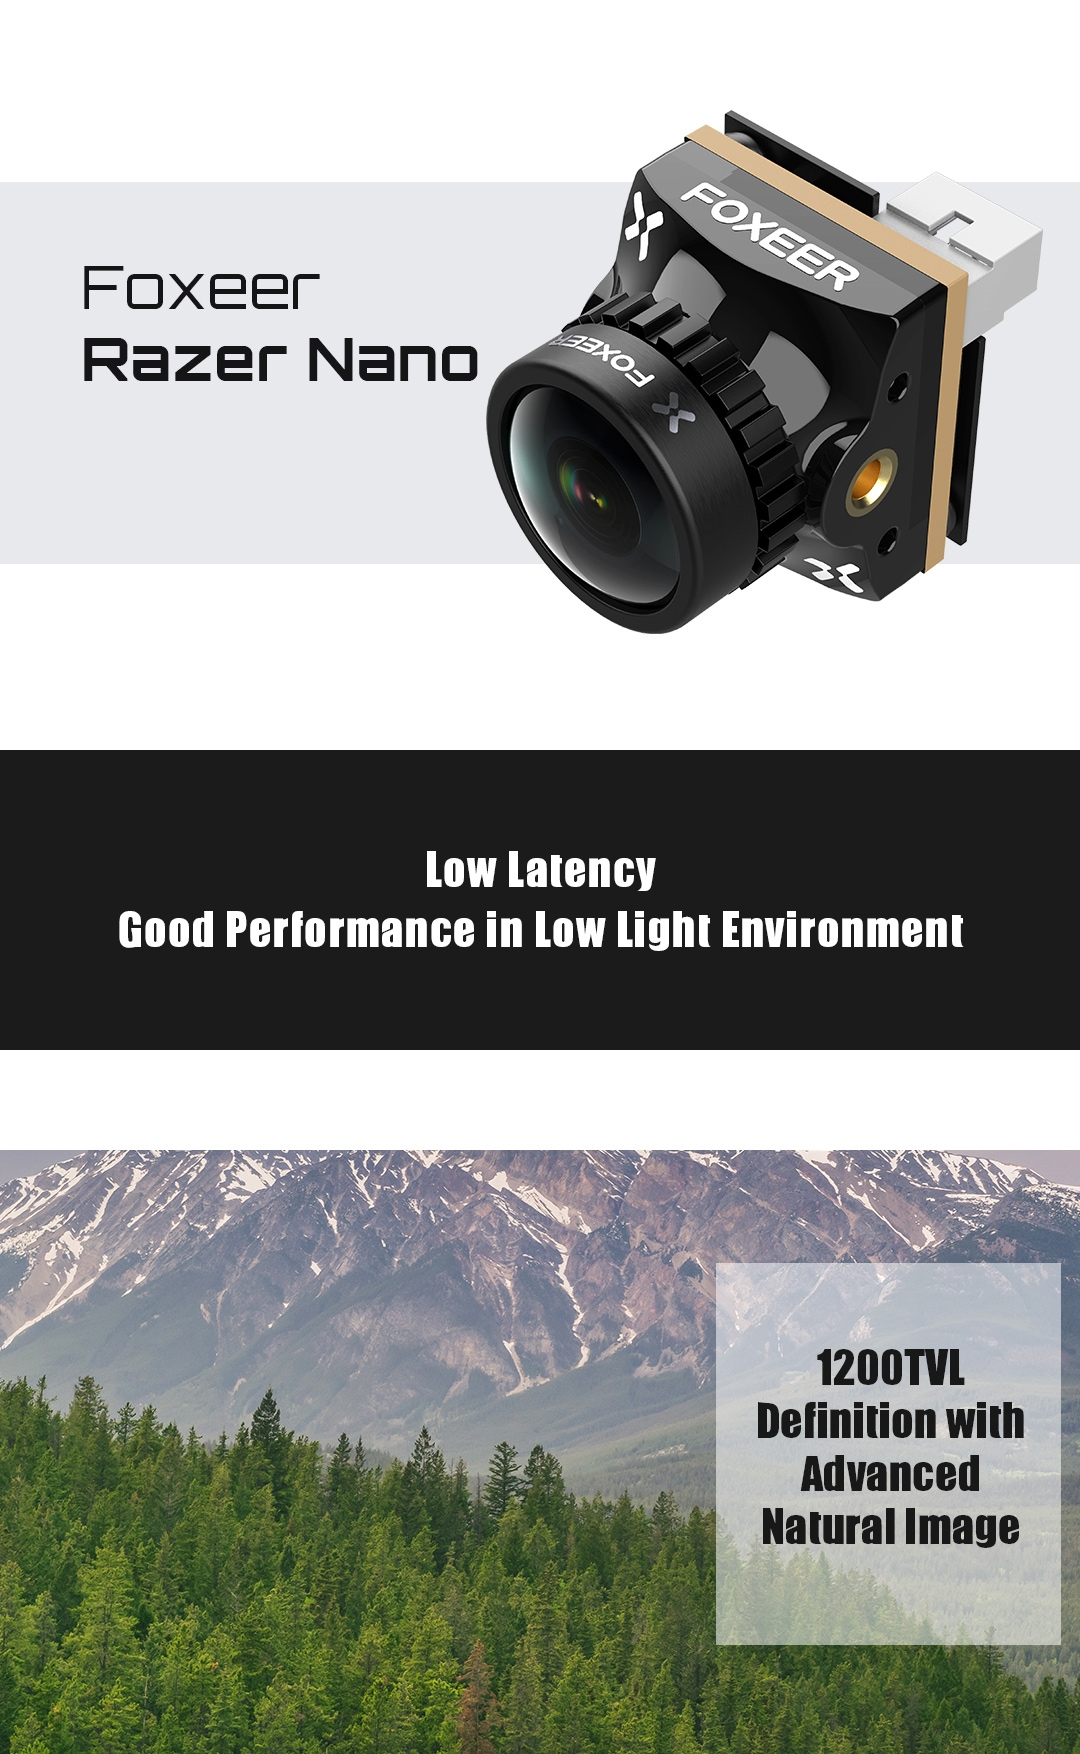 Foxeer Razer Nano 1200TVL 1/3 CMOS Low Latency FPV Camera 4:3/16:9 PAL/NTSC Optional For RC Racer Drone